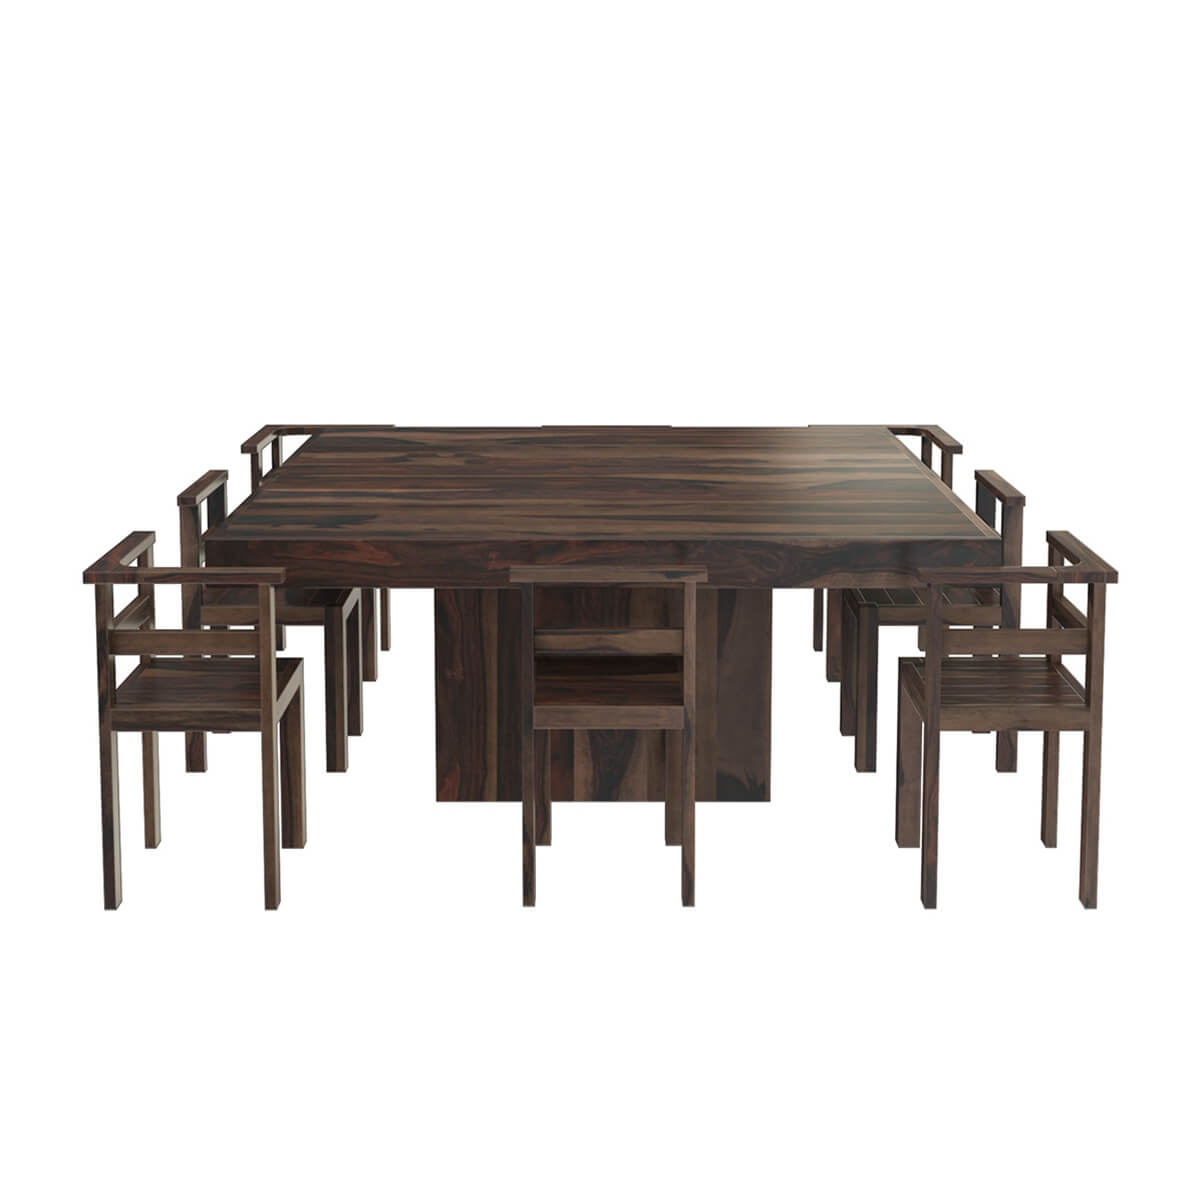 Modern Rustic Solid Wood 64quot Square Pedestal Dining Table  : 69062 from www.sierralivingconcepts.com size 1200 x 1200 jpeg 336kB